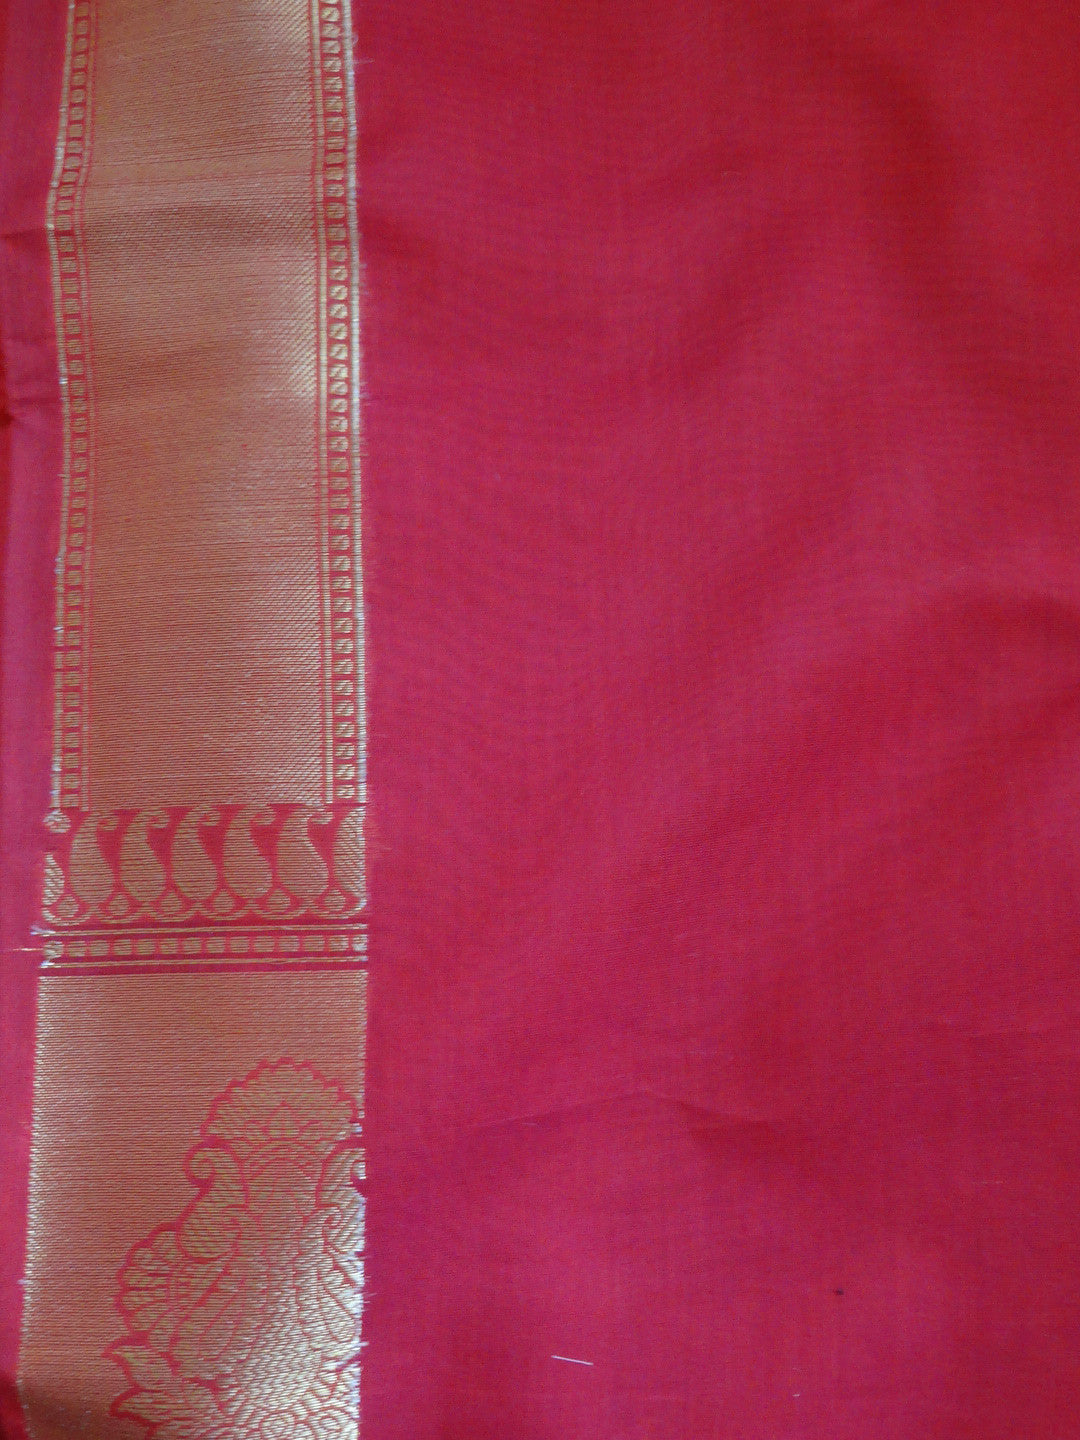 Banarasee/Banarasi Handloom Cotton Silk Mix Paithani Border Sari-Red